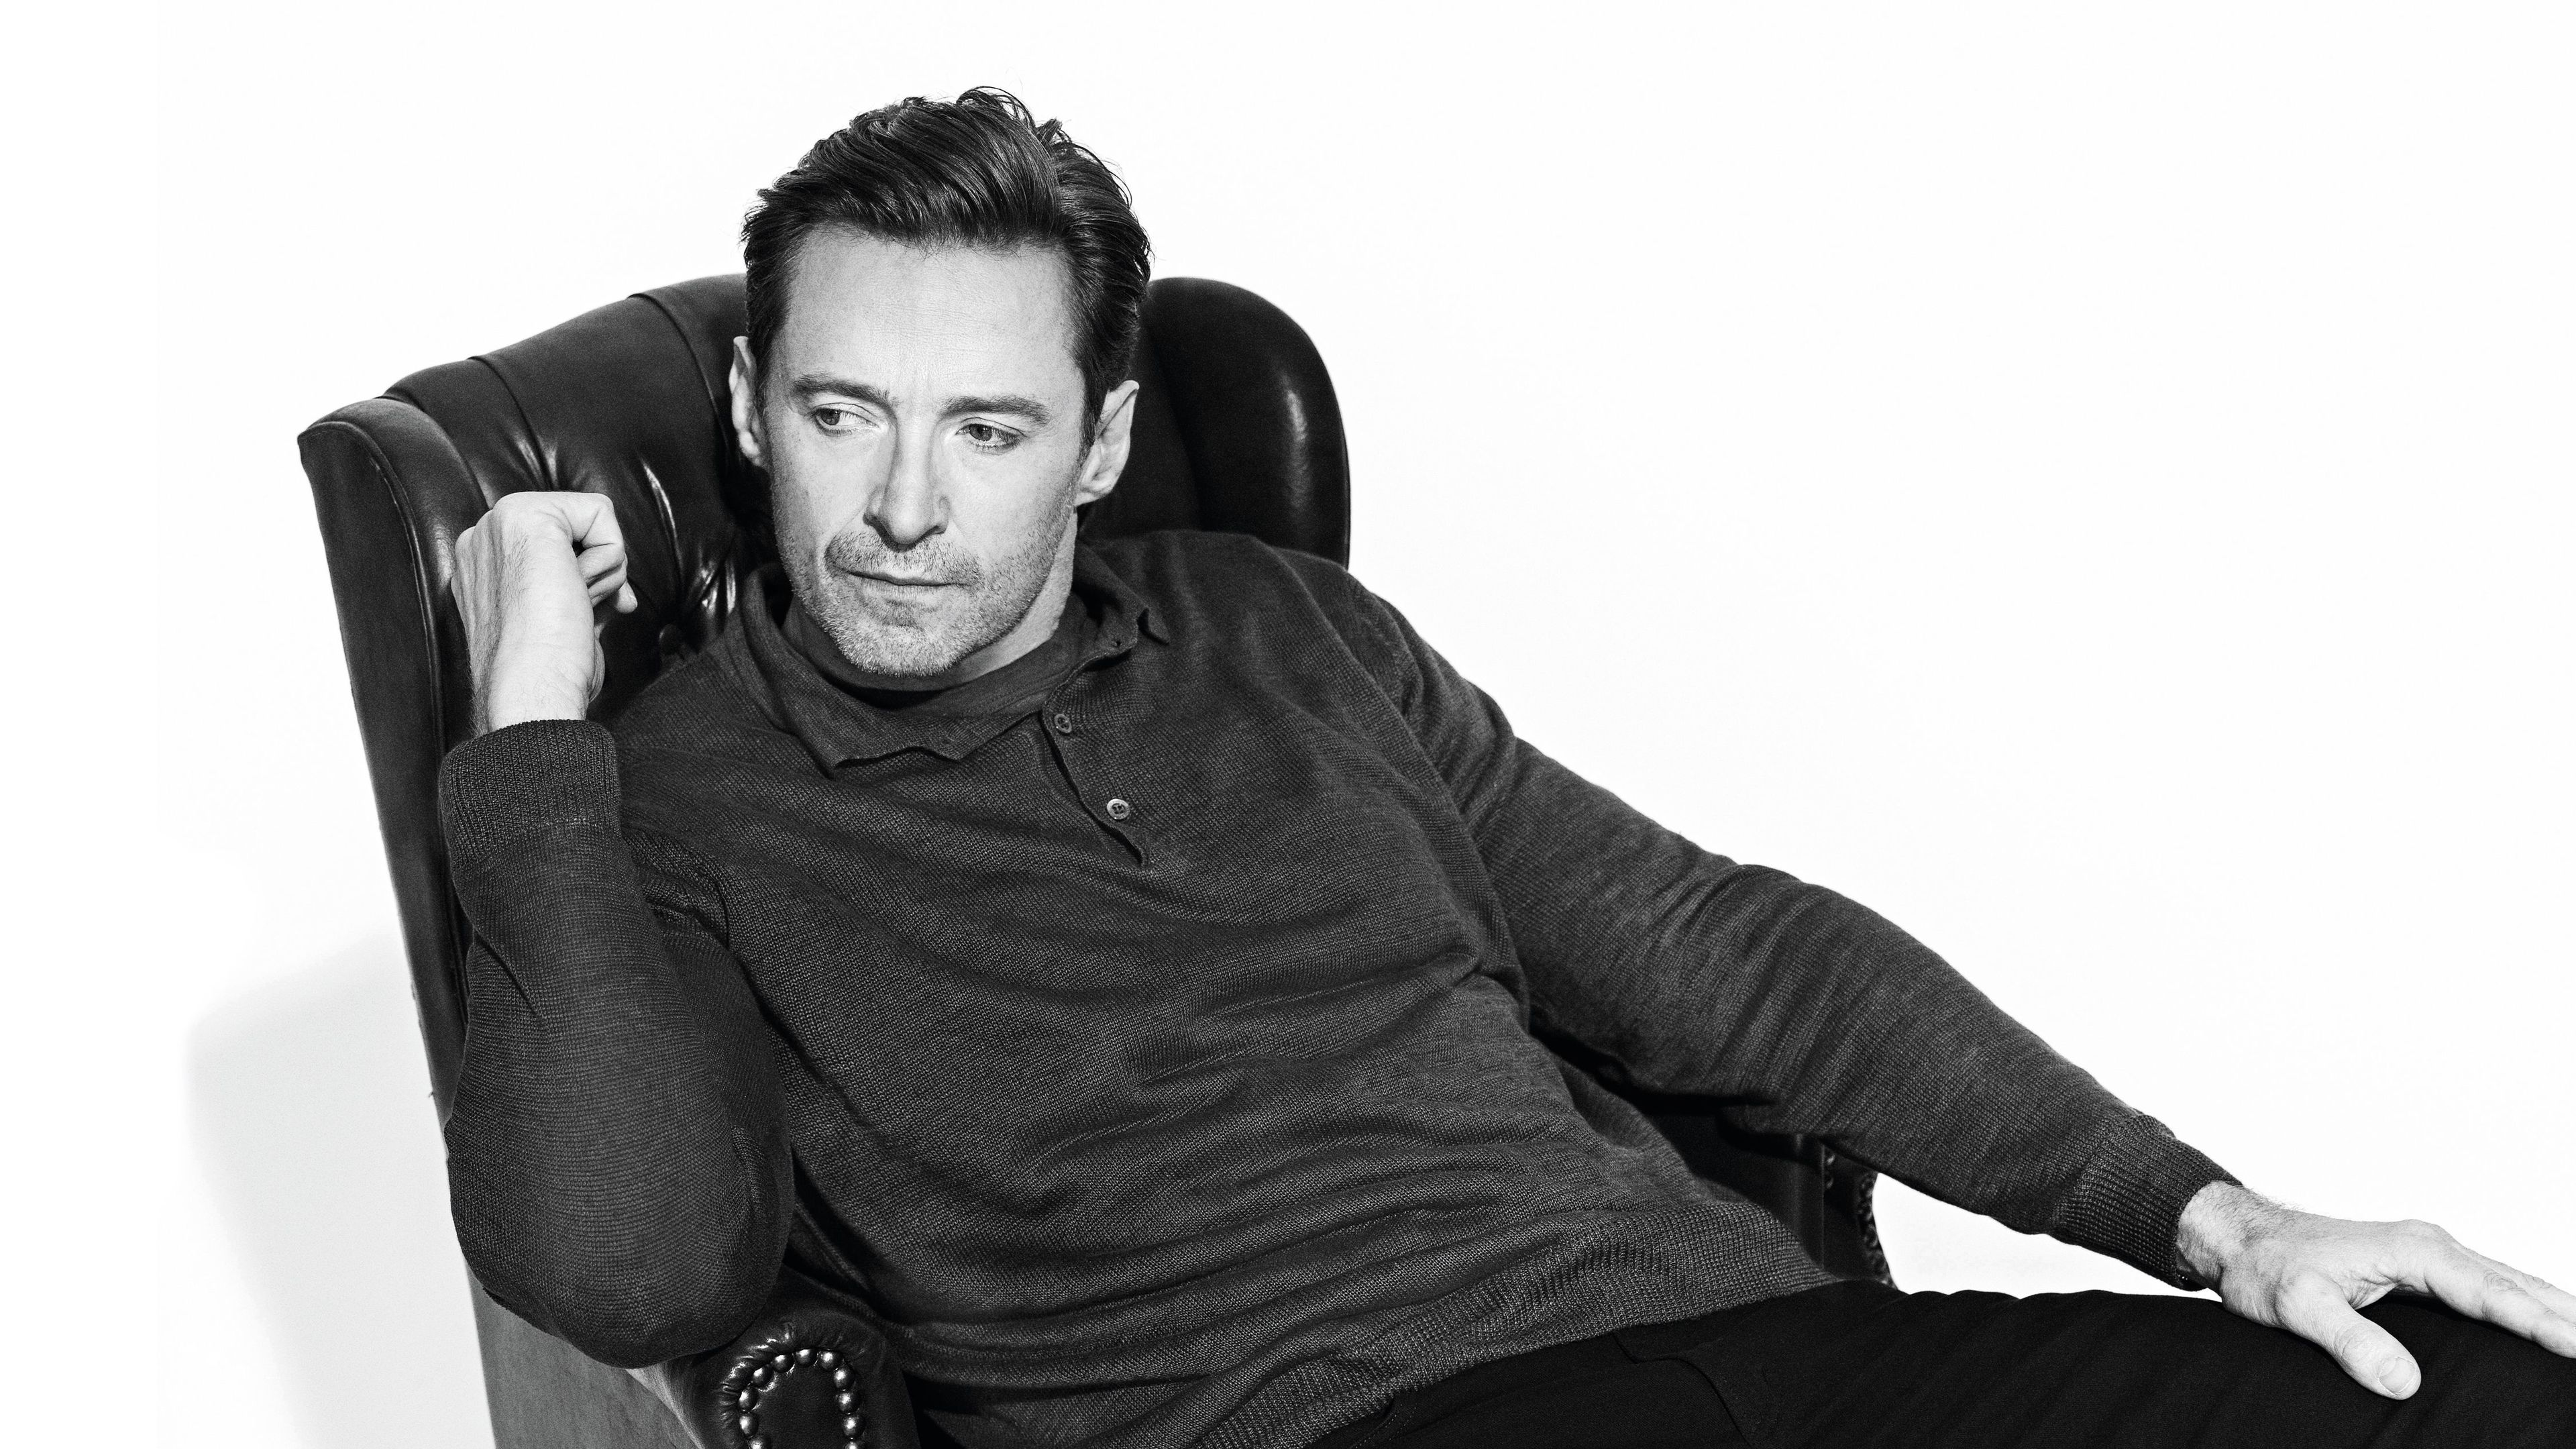 hugh jackman 2019 4k 1553073394 - Hugh Jackman 2019 4k - monochrome wallpapers, hugh jackman wallpapers, hd-wallpapers, 4k-wallpapers